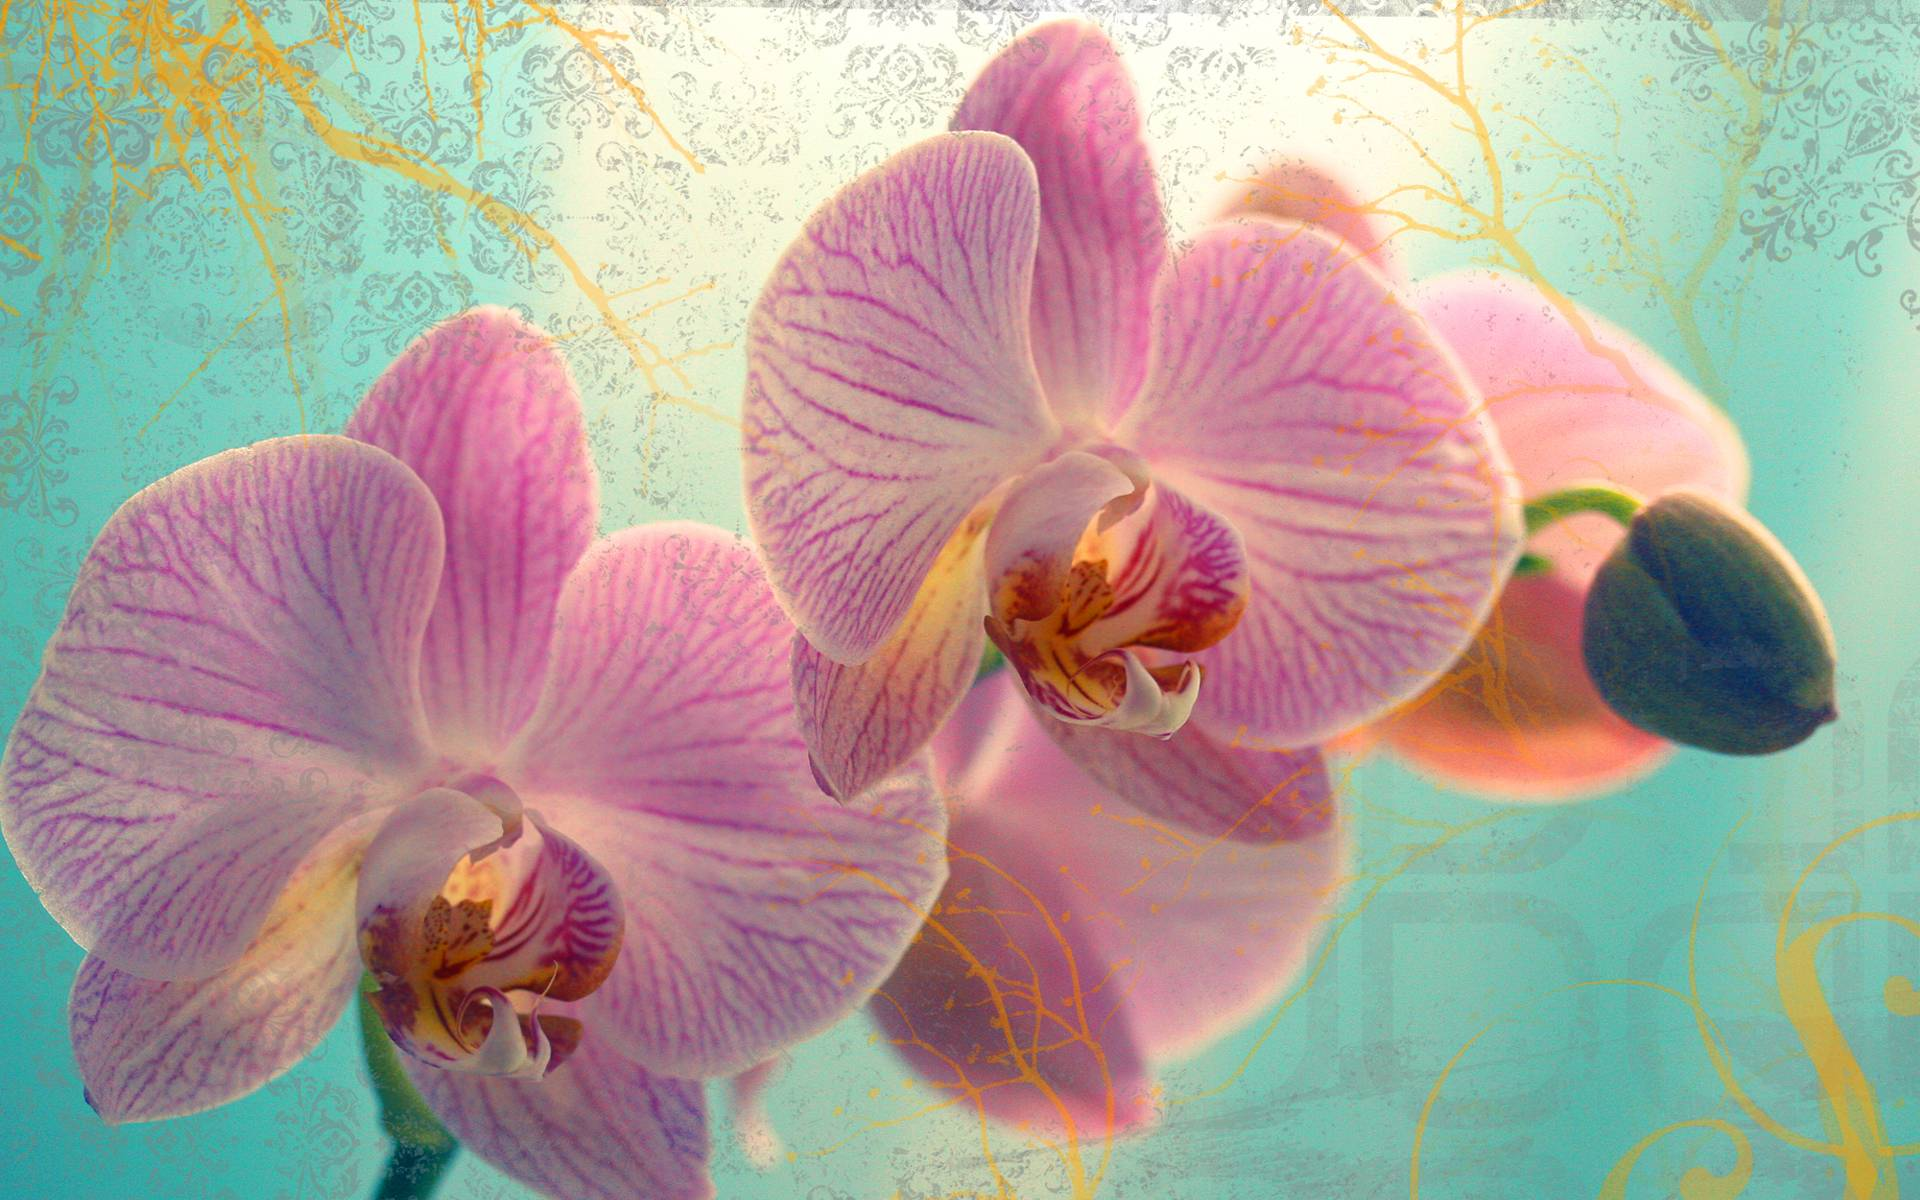 orchid wallpapers backgrounds images - photo #18